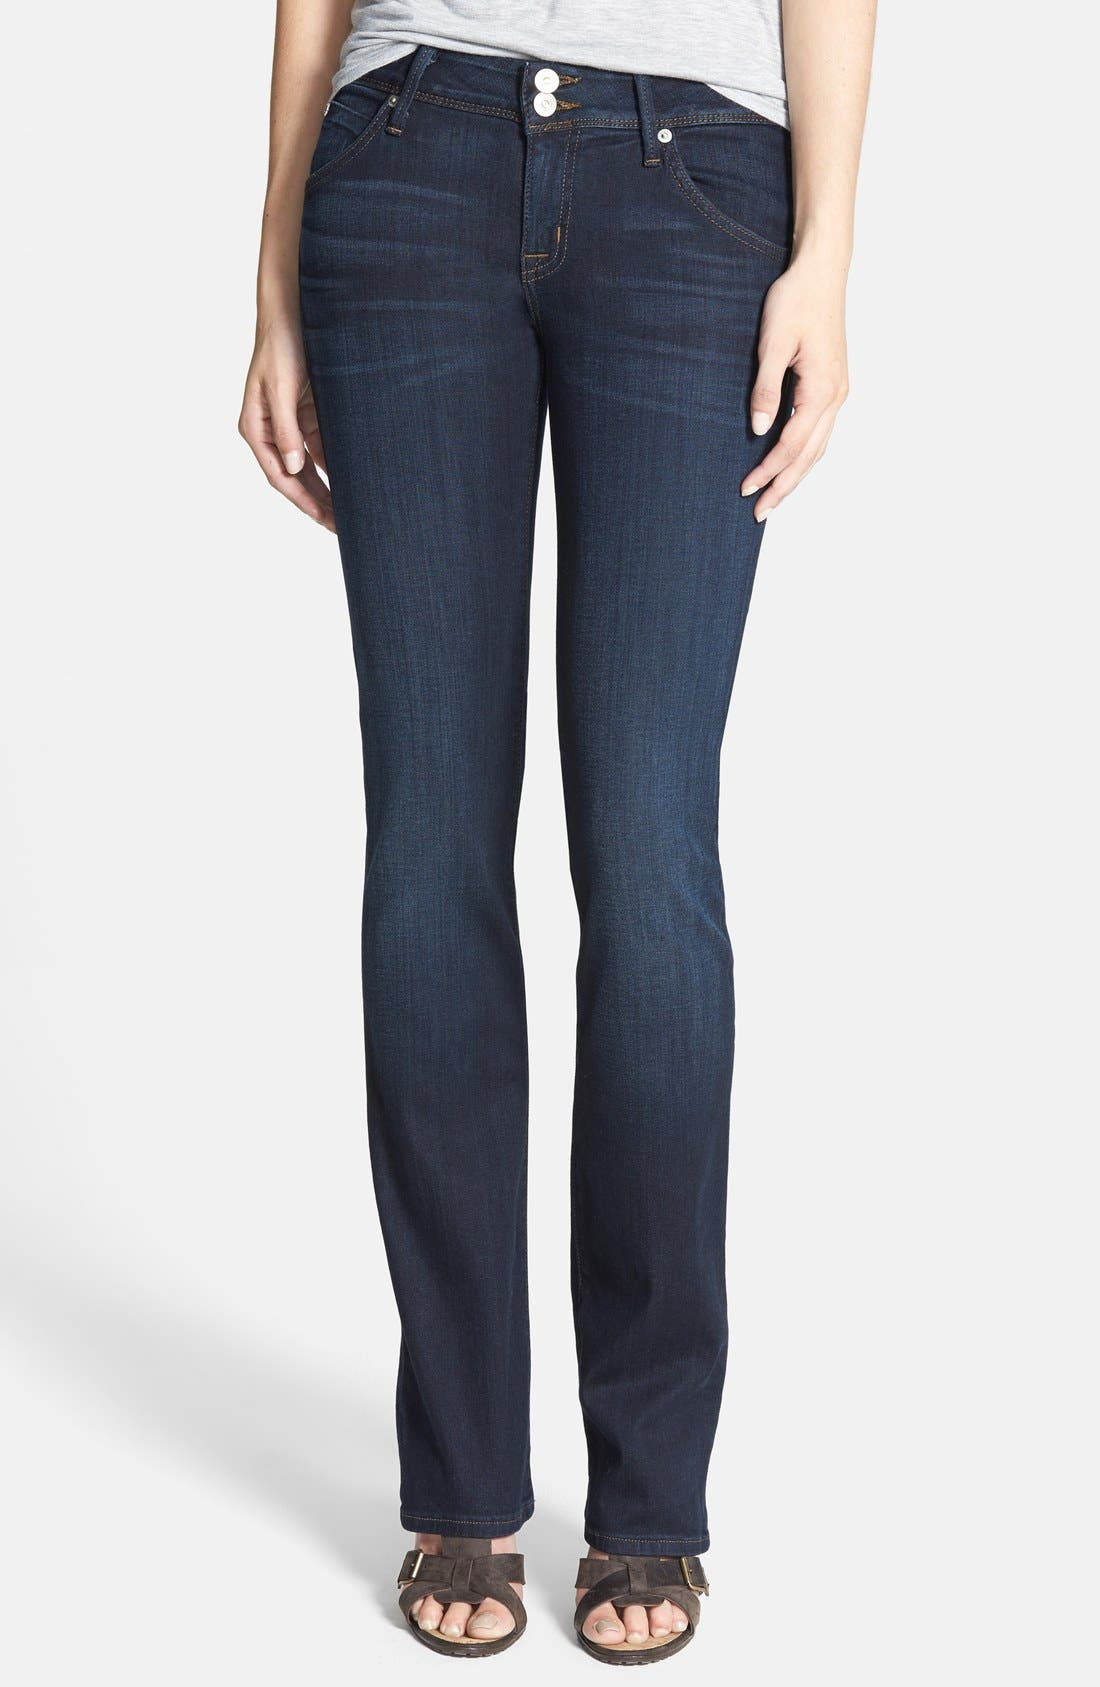 Alternate Image 1 Selected - Hudson Jeans 'Beth' Baby Bootcut Jeans (London Calling)